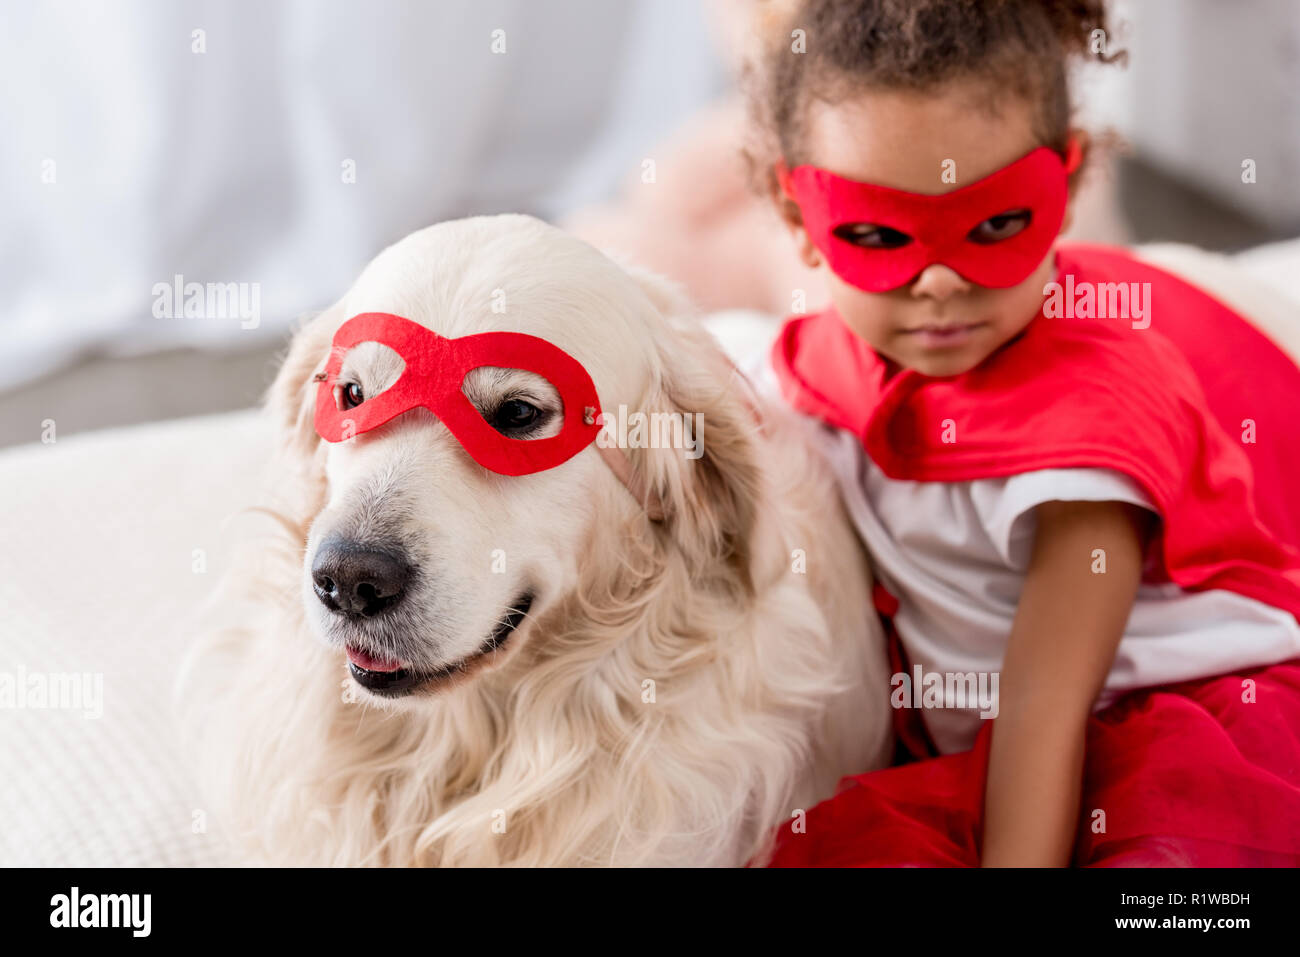 Adorable little african american kid with dog in superhero costumes and red masks - Stock Image